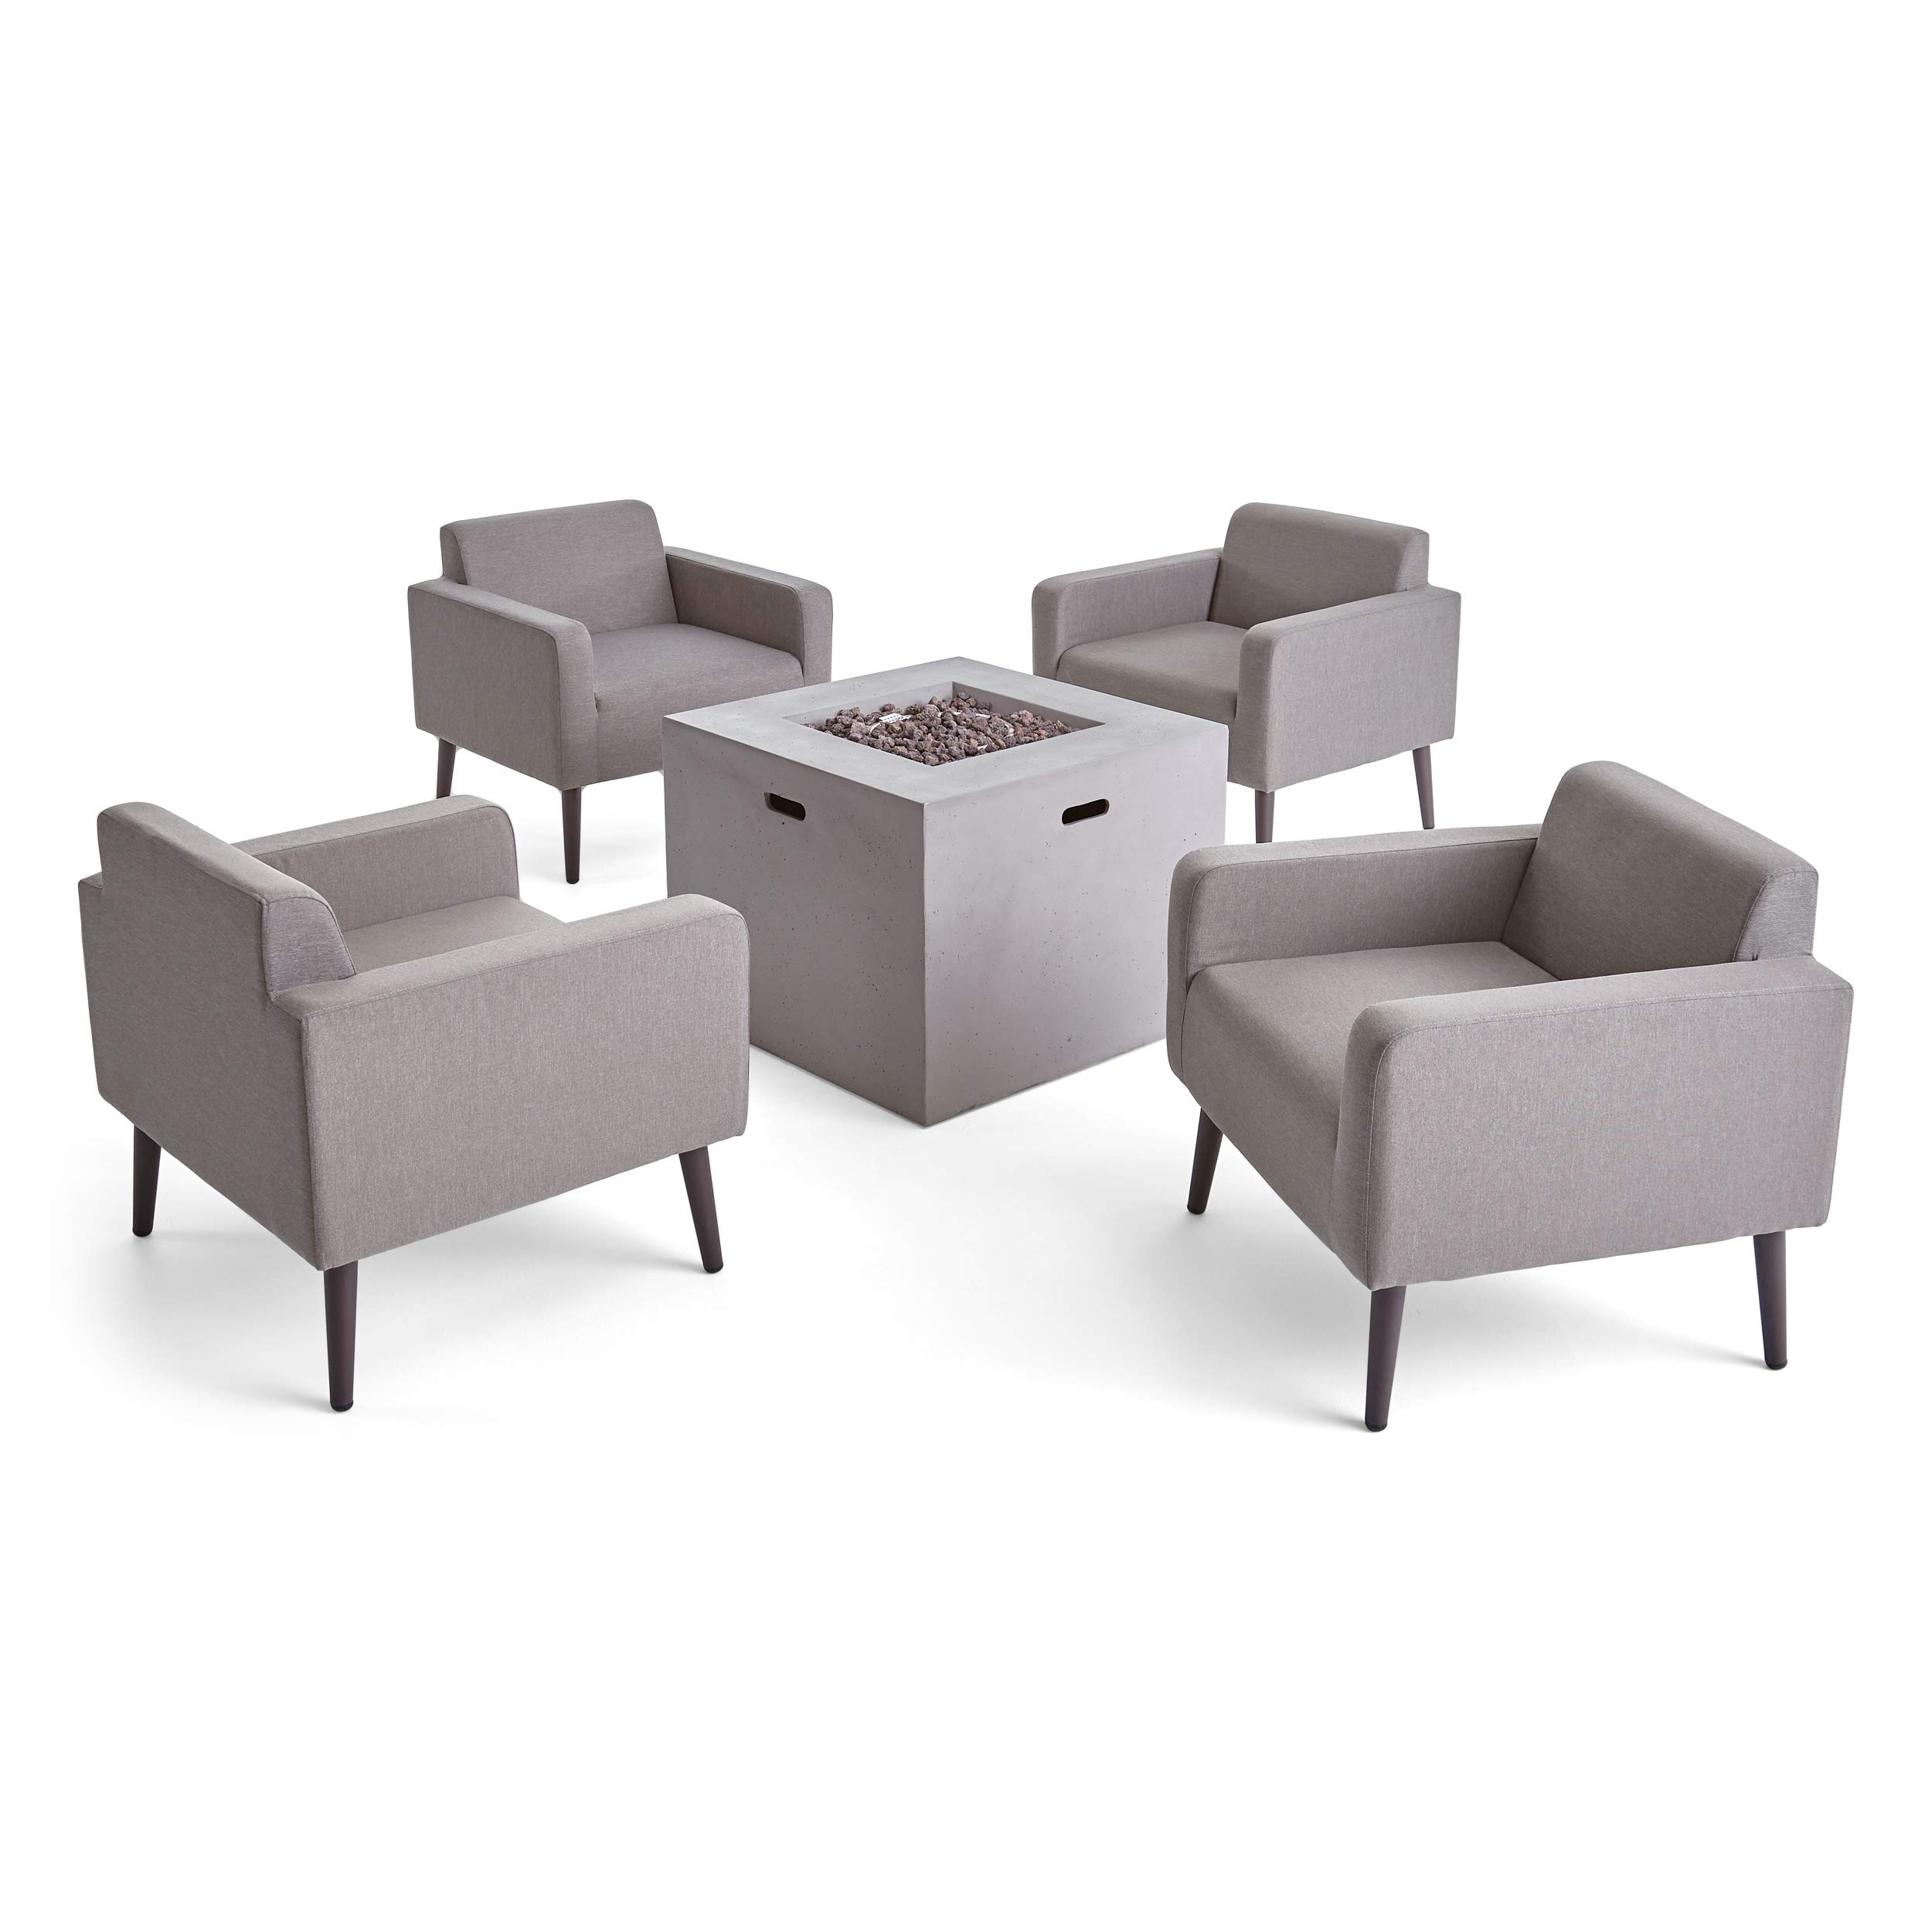 Carina Outdoor Upholstered 5 Piece Club Chair and Fire Pit Set, Taupe and Light Gray by Great Deal Furniture